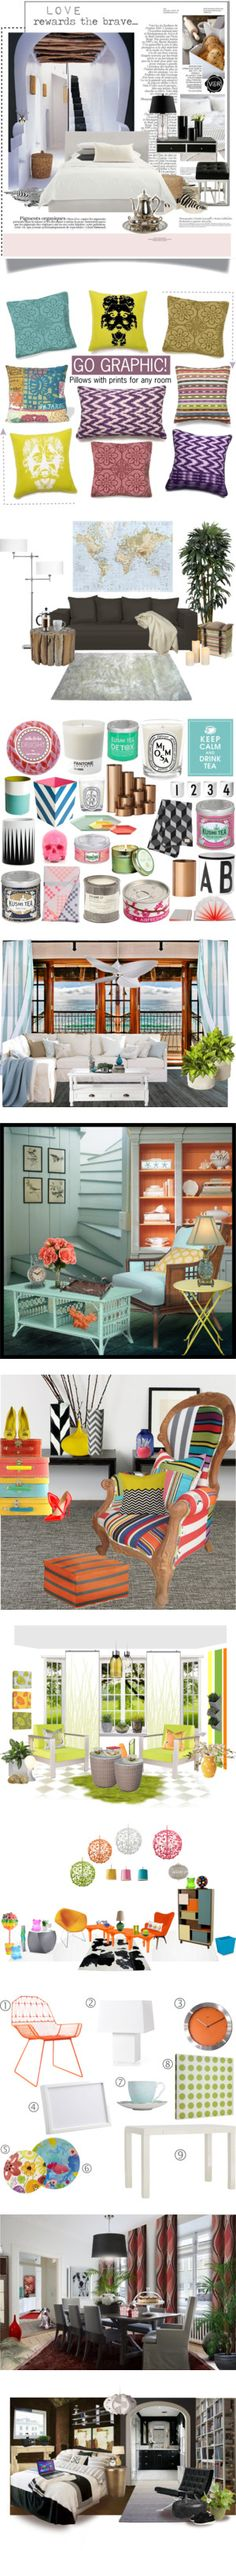 """Top Interior Design Sets for Apr 21st, 2013"" by polyvore ❤ liked on Polyvore"